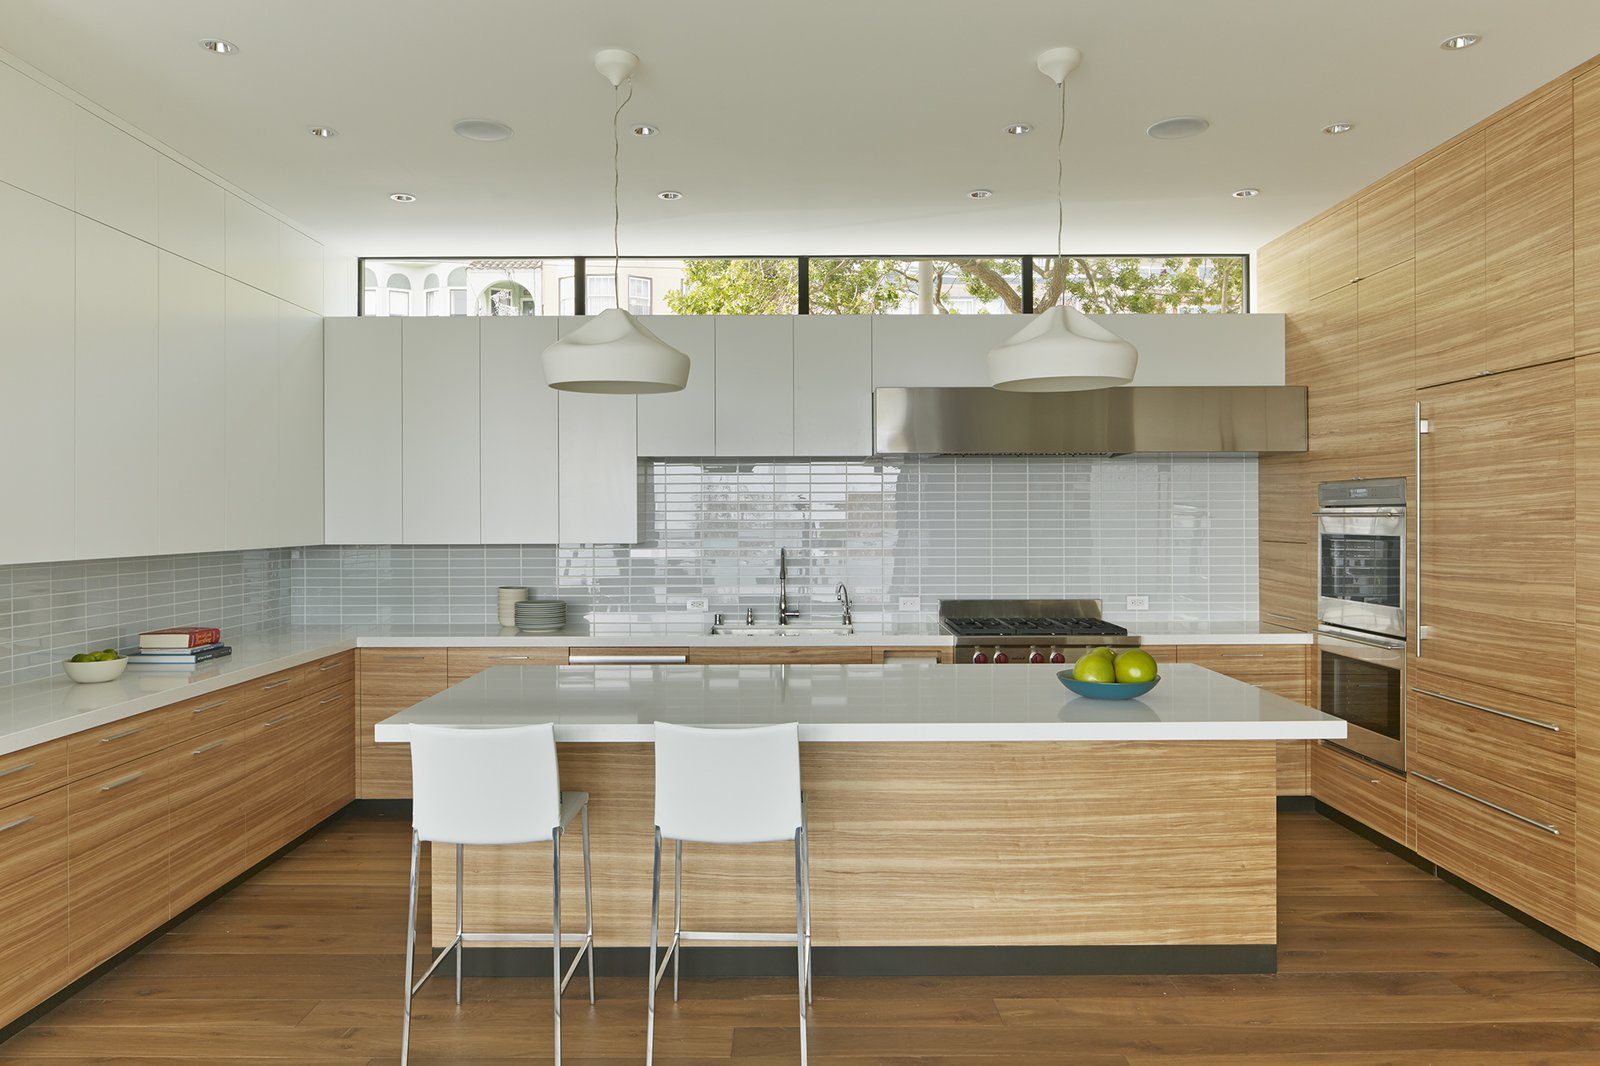 The architects wanted to create as much of a buffer as possible against the urban traffic outside the kitchen. A clerestory window manages to maintain a visual connection with the neighborhood while blocking its noise. The kitchen features Pleat Box pendant lights from Marset and Lio Stools by Roberto Barbieri for Zanotta.